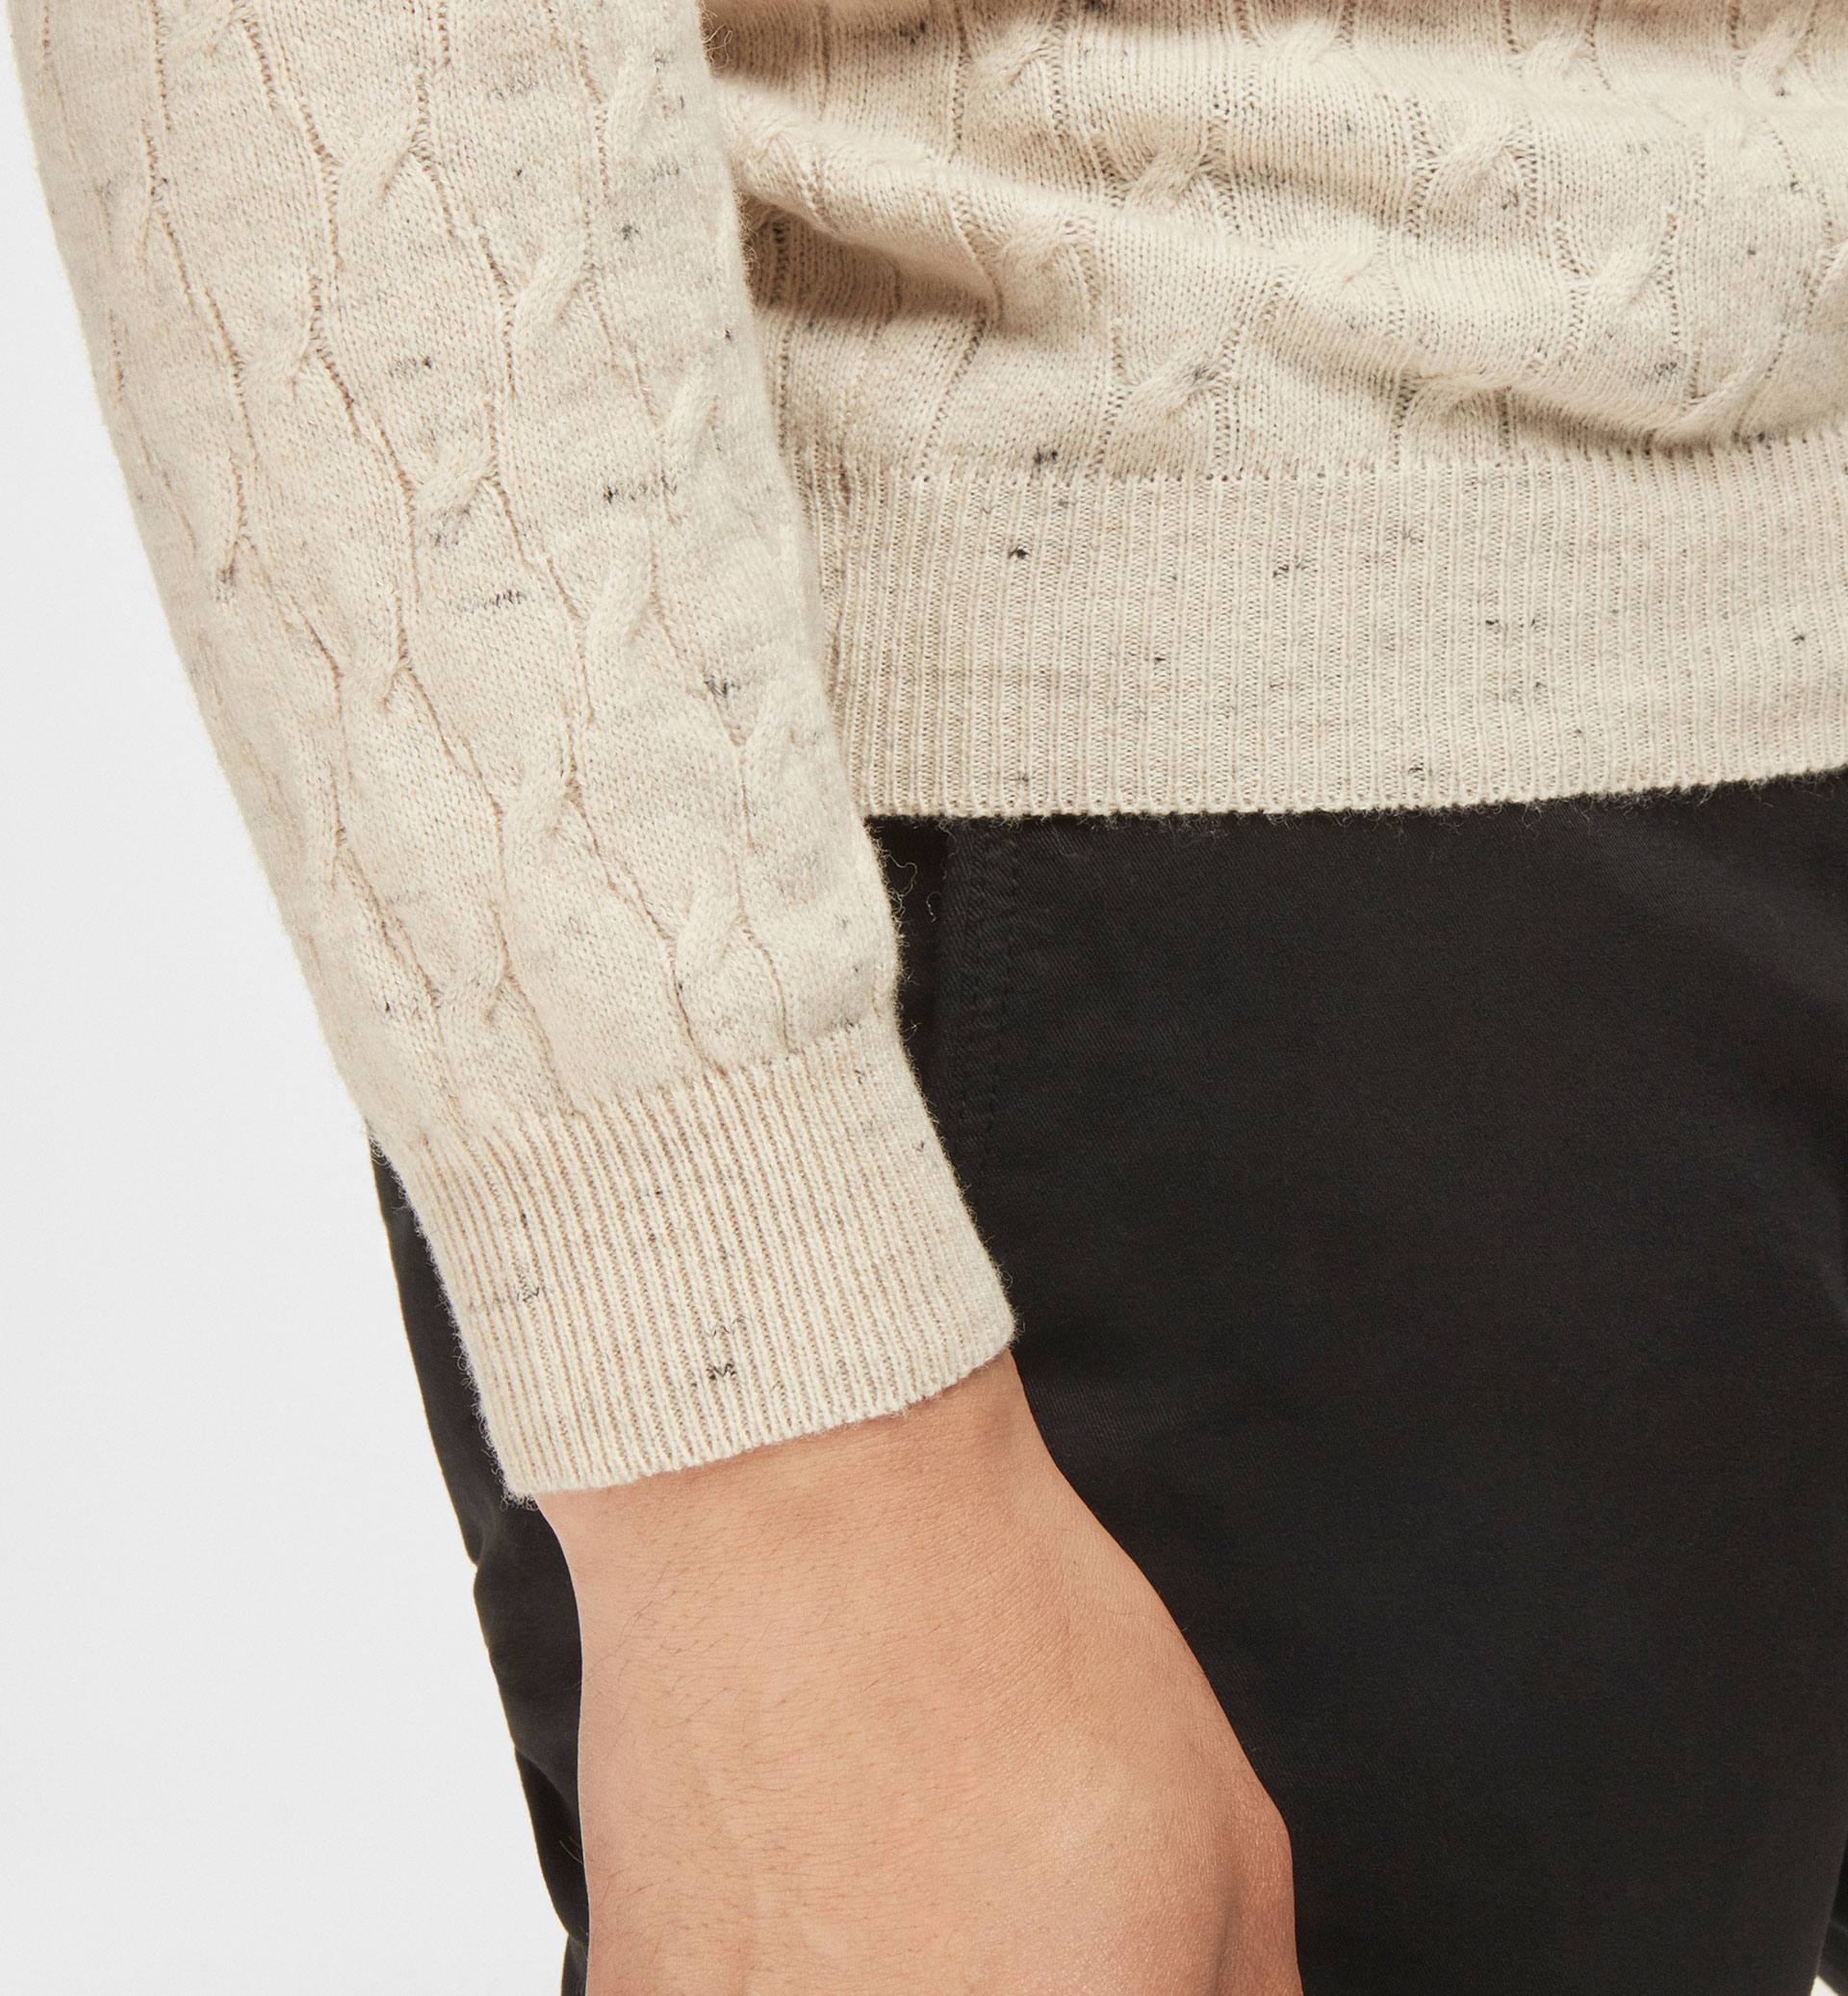 CABLE KNIT DETAIL FLECKED SWEATER